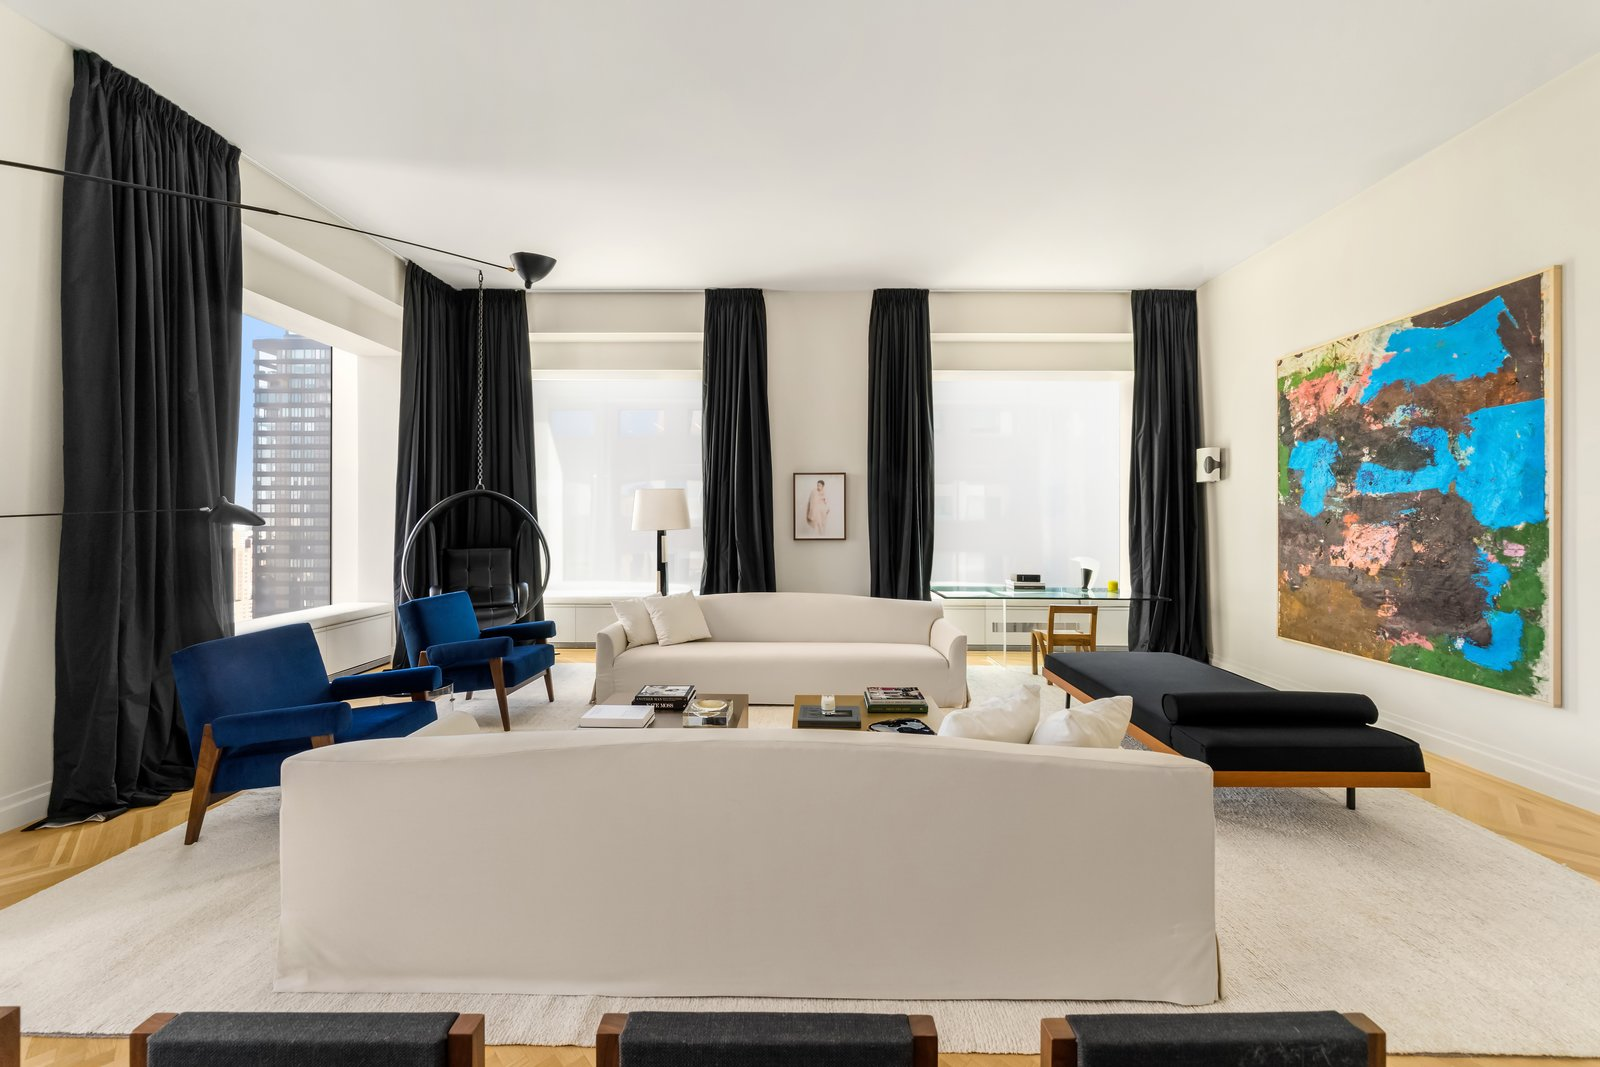 J.Lo and A-Rod's 432 Park Avenue apartment living room